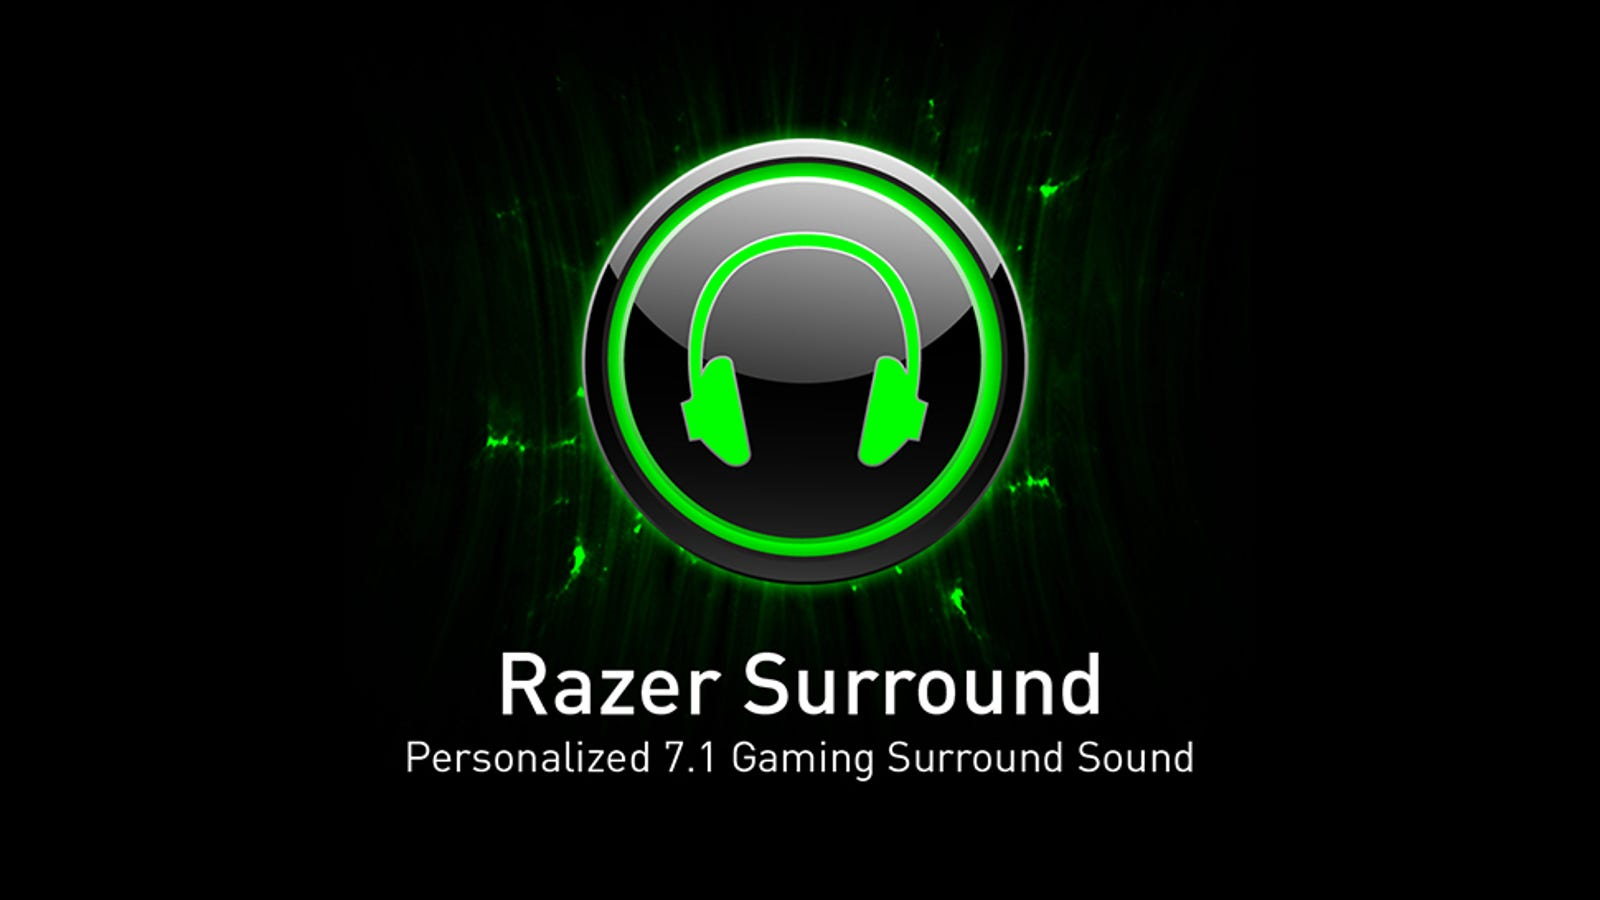 noise cancelling earbuds naztech - Razer's Surround Software Could Turn Regular Headphones Into 7.1 Cans